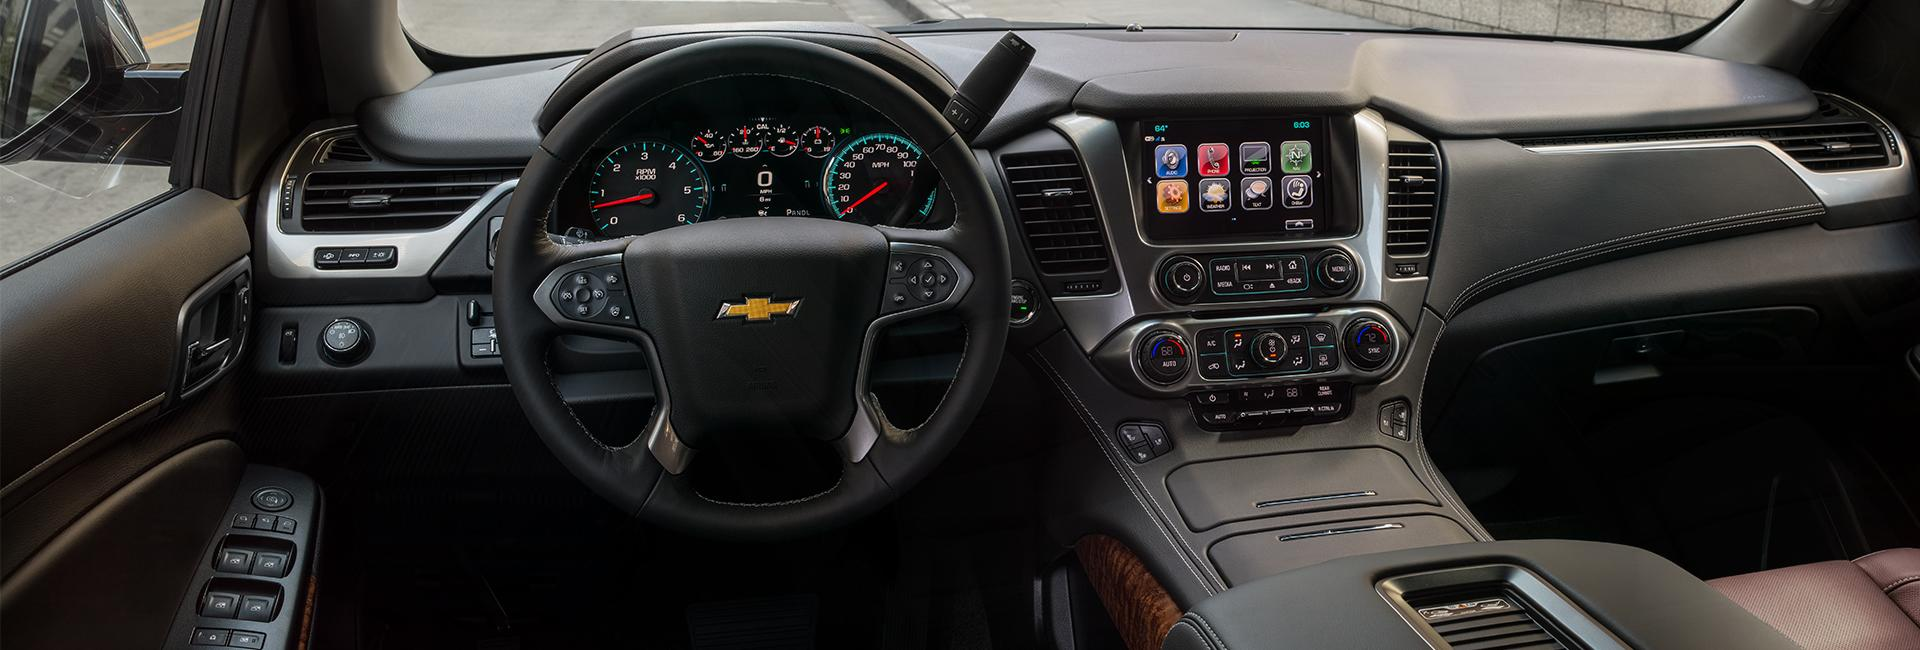 Picture of the interior of the 2020 Chevy Tahoe at Spitzer Chevy Lordstown.